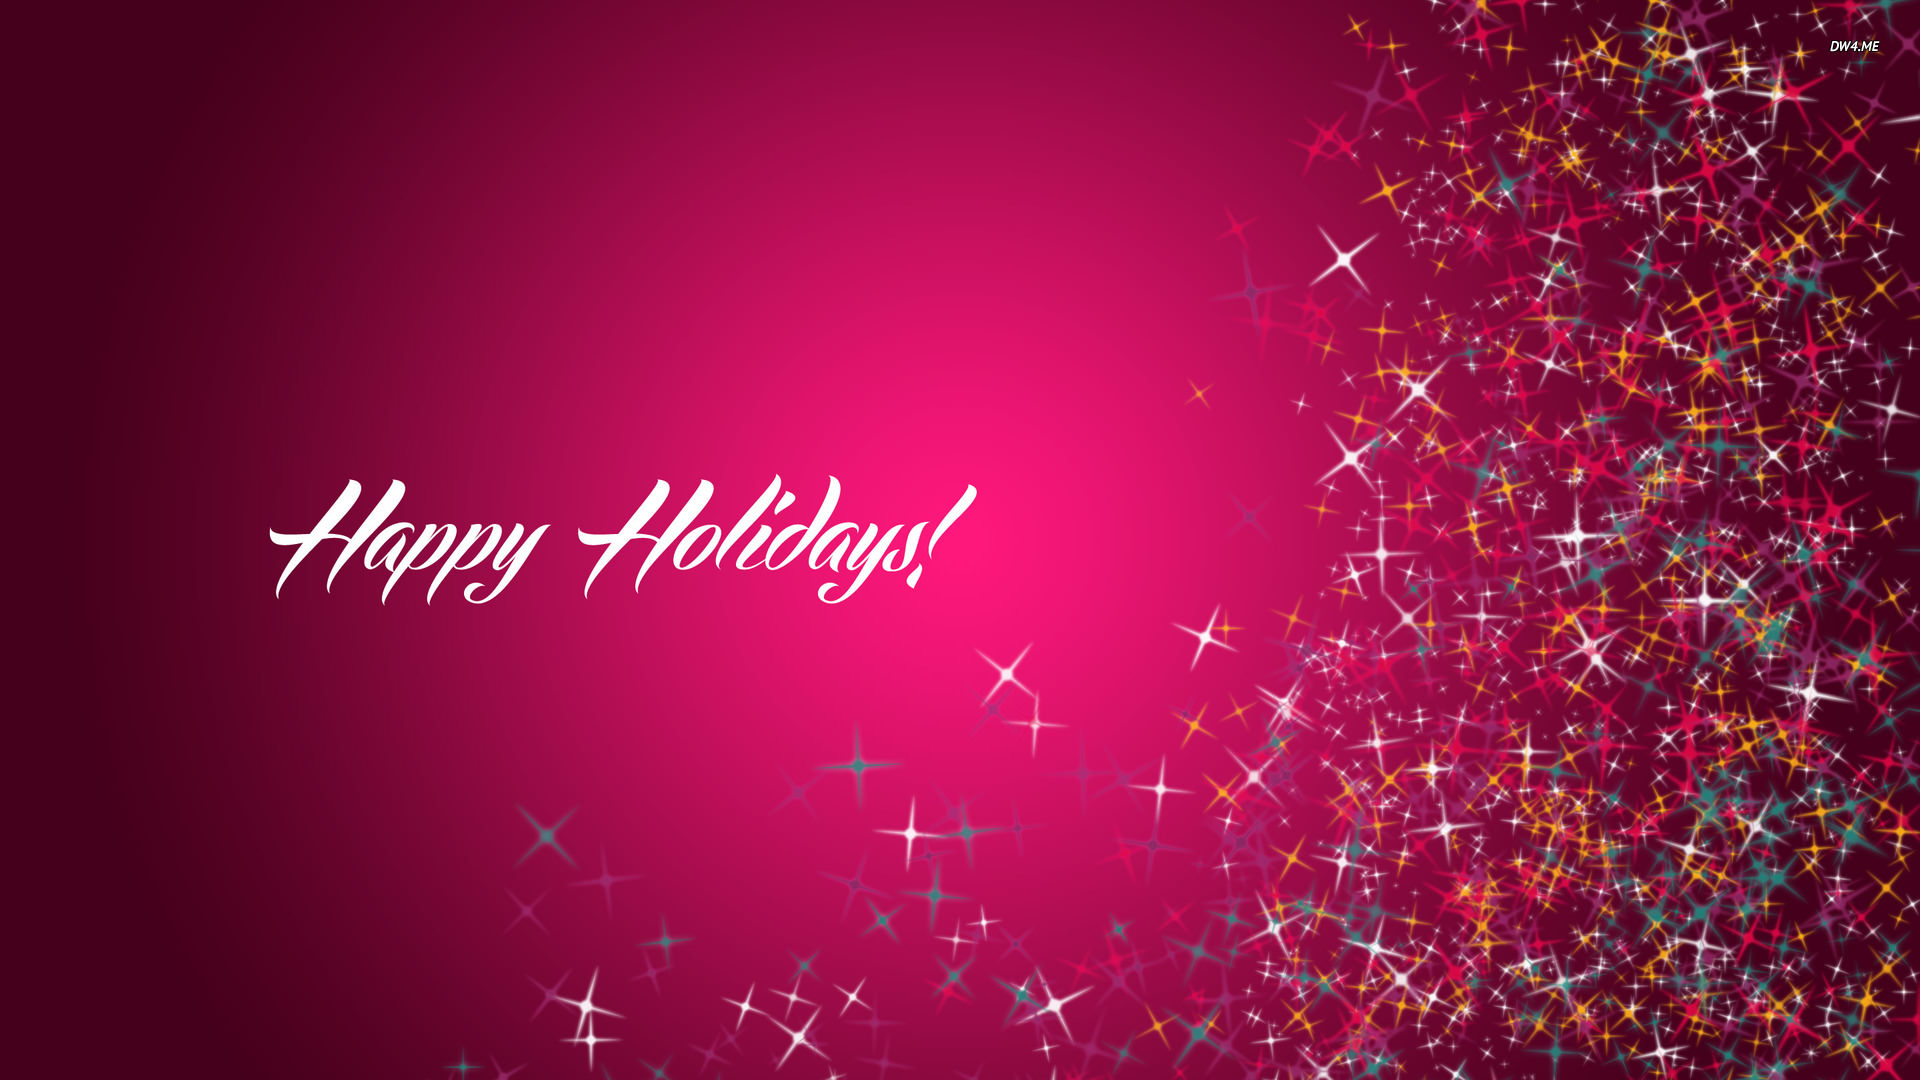 Wallpapers Holiday